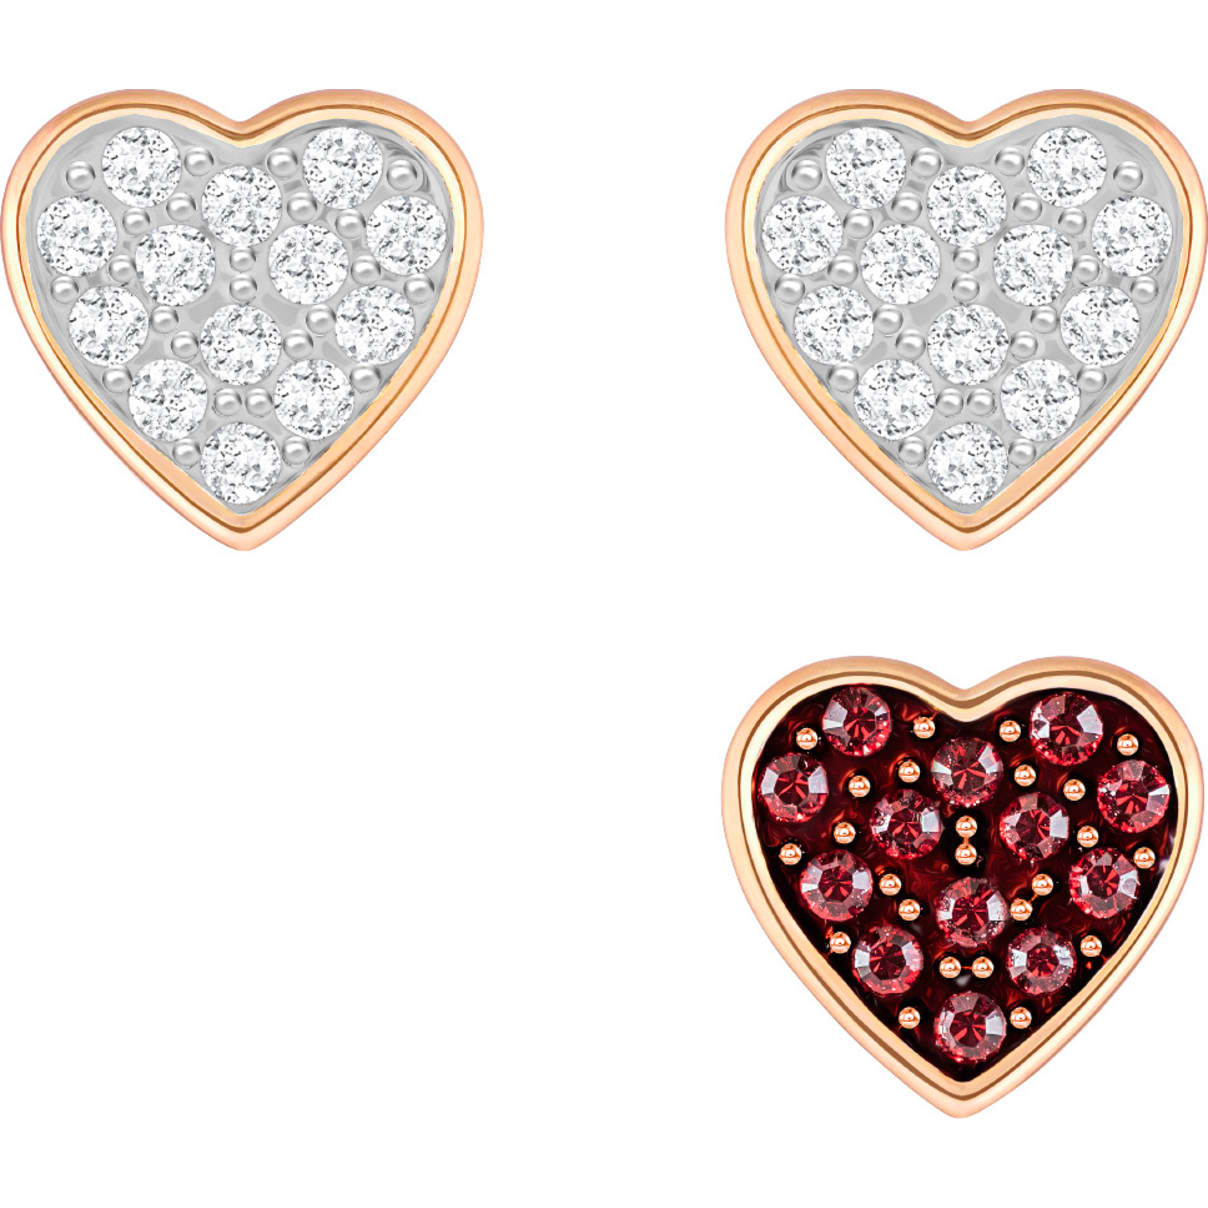 Swarovski Crystal Wishes Pierced Earring Set, Multi-colored, Rose-gold tone plated